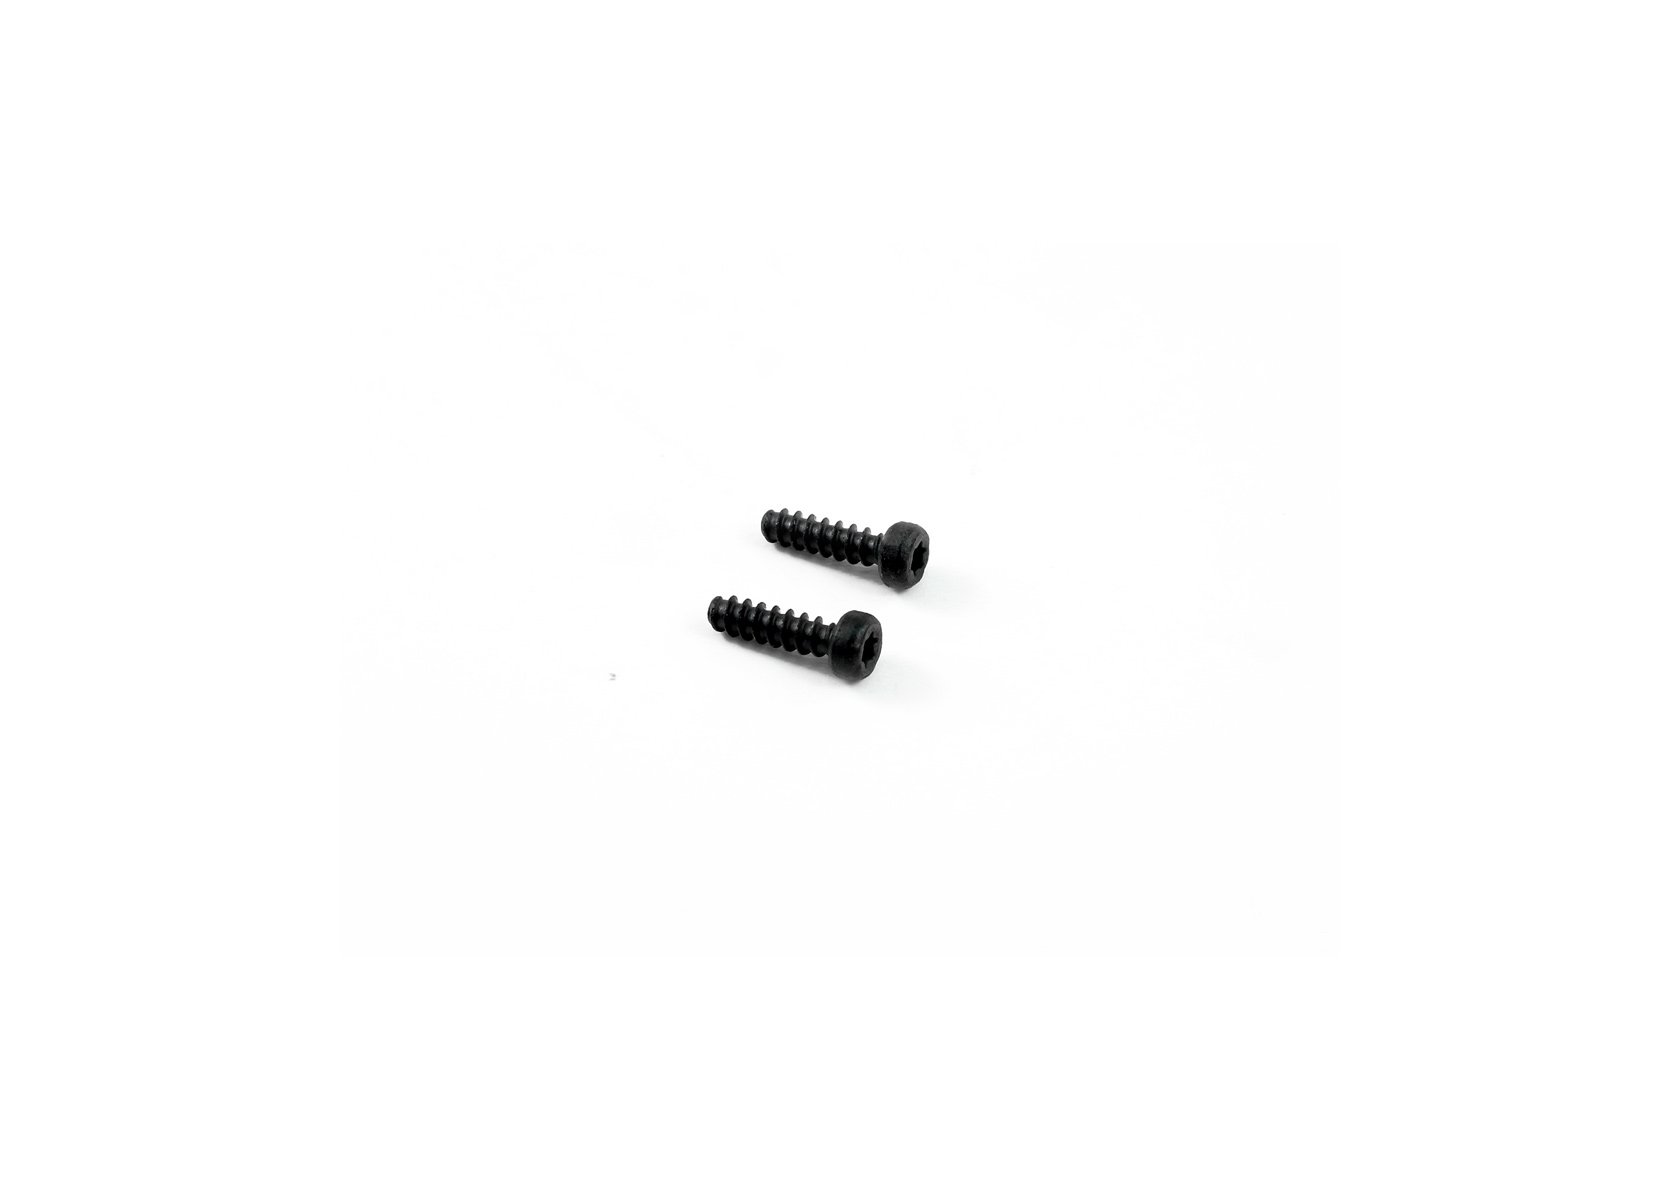 SL A replacement screws